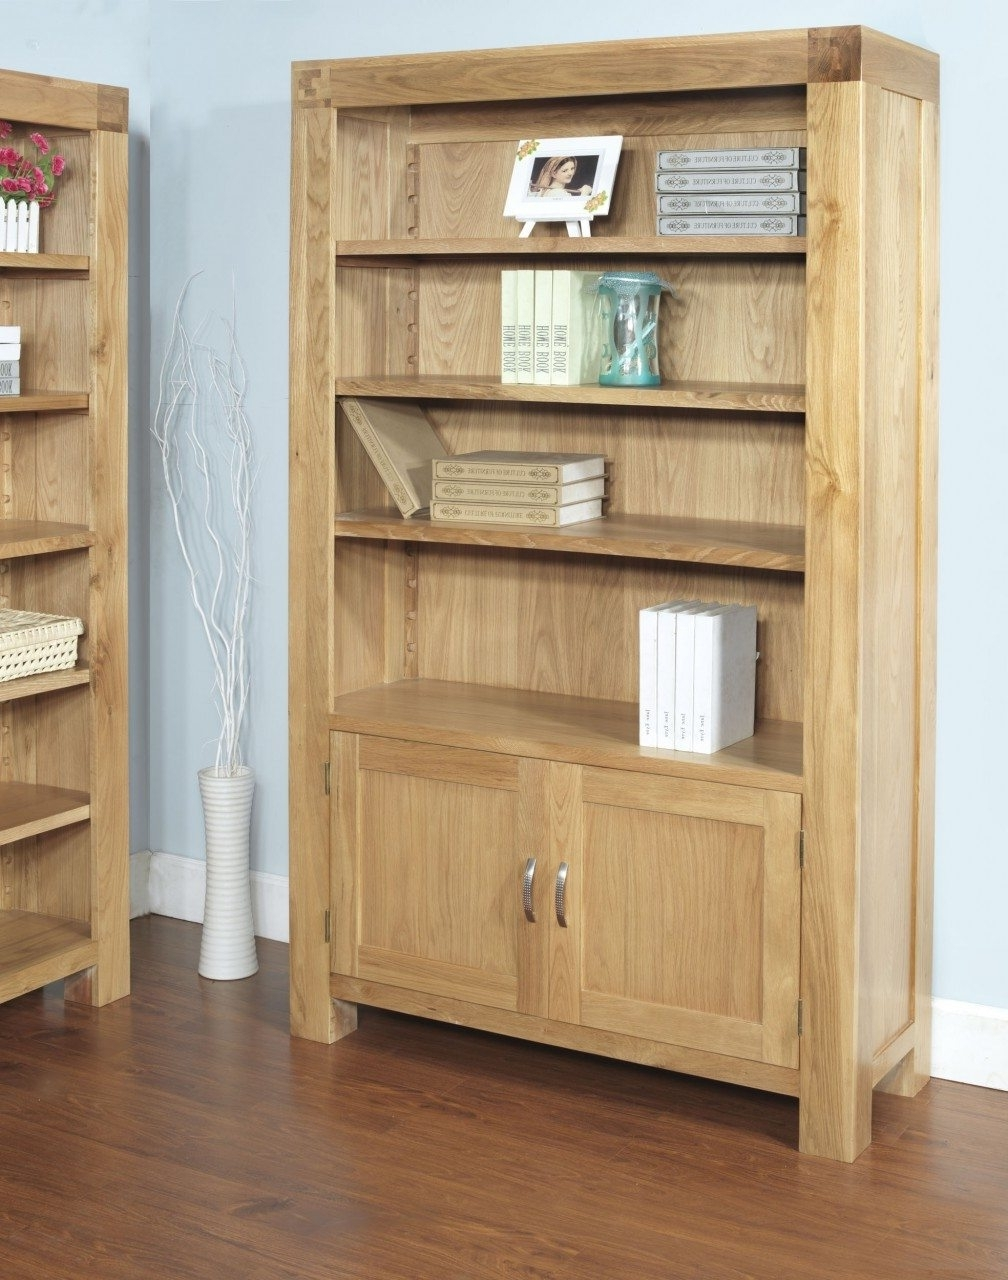 Yvotube Within Bookcases With Bottom Cabinets (View 15 of 15)